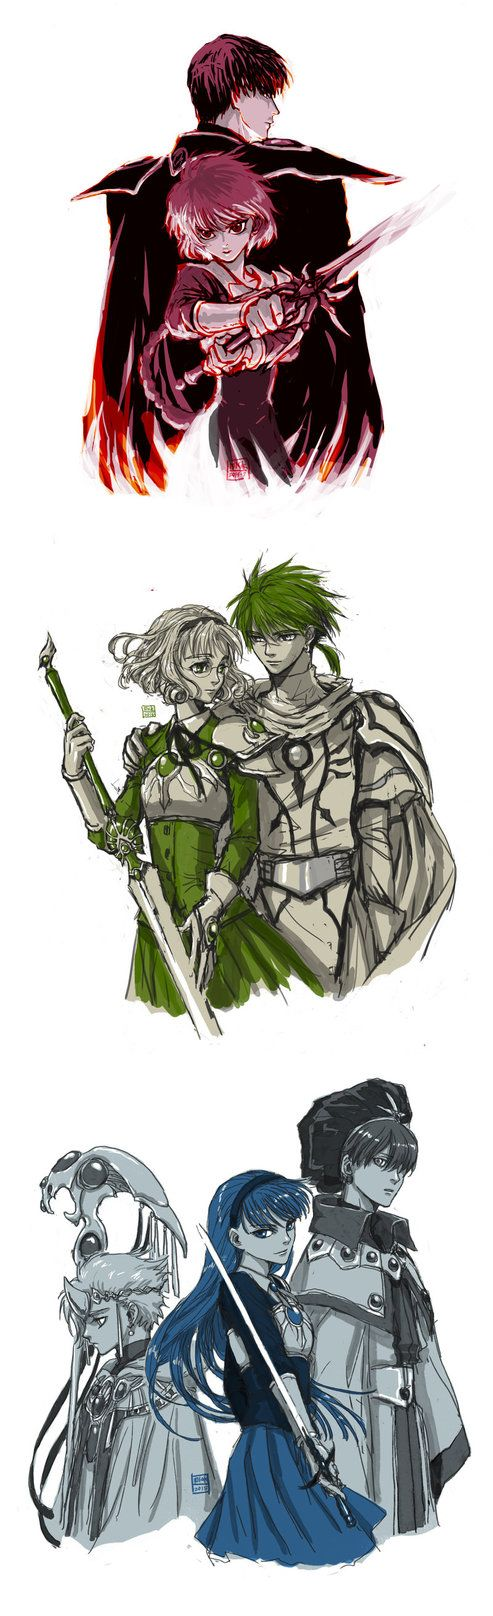 Magic Knight Rayearth by mick347.deviantart.com on @DeviantArt